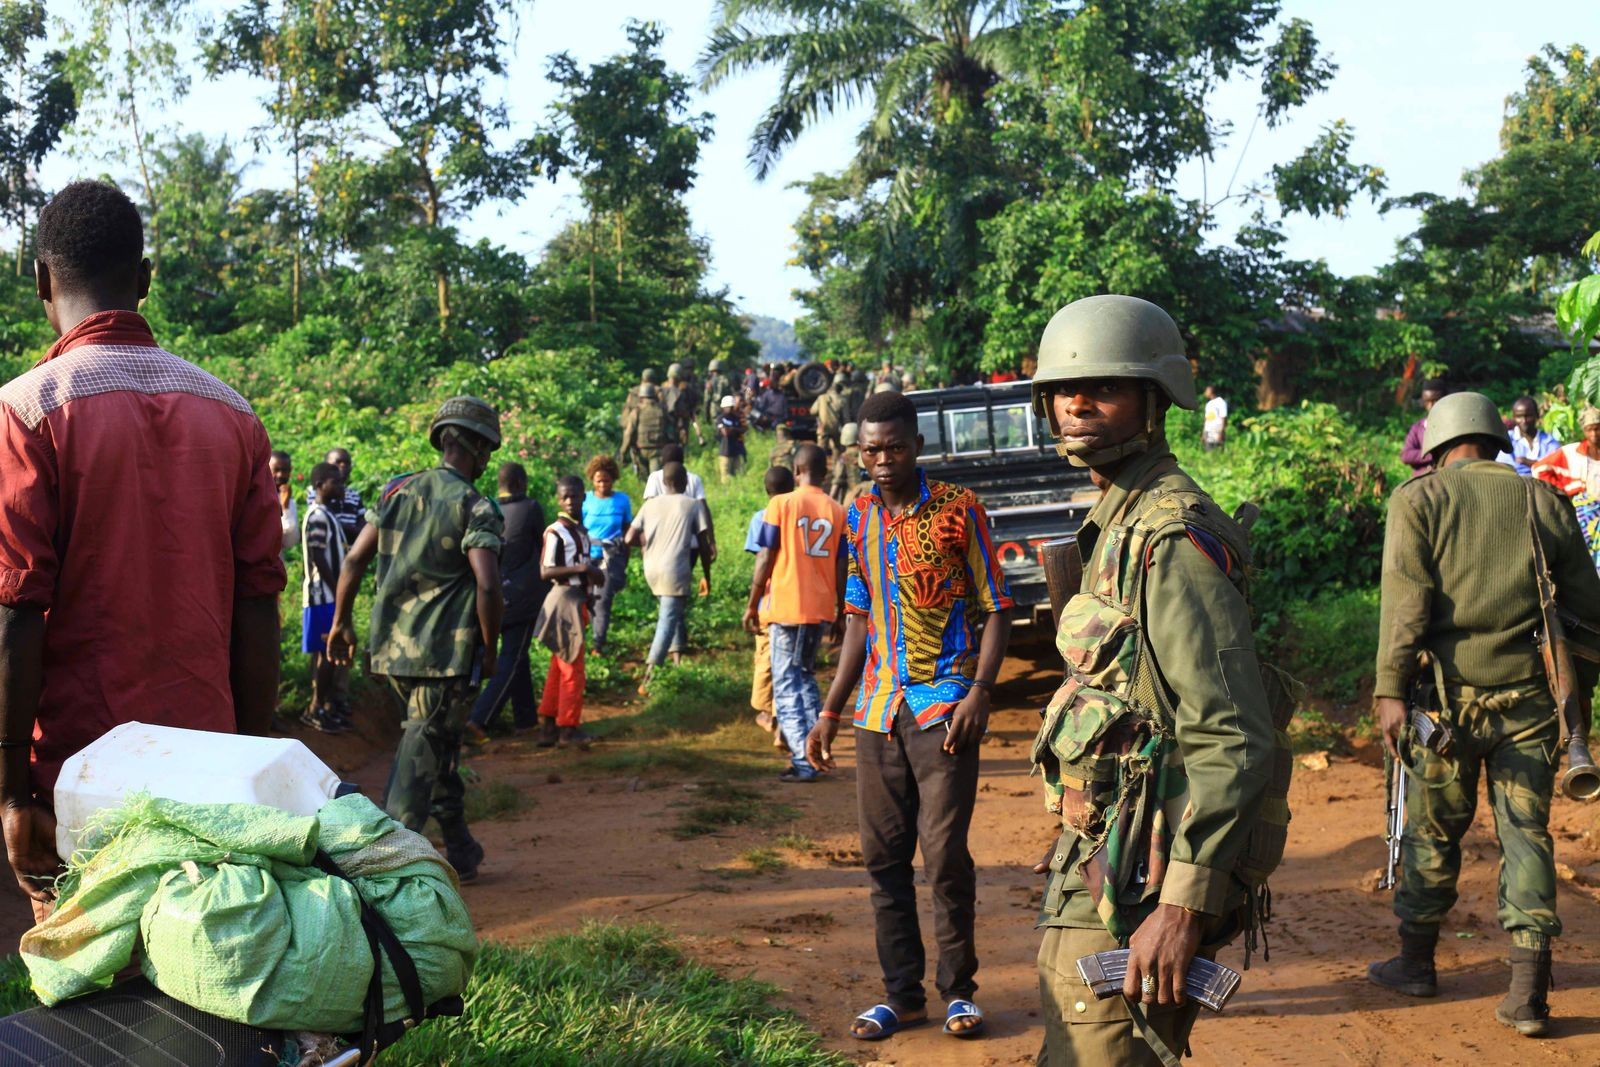 In this photo taken Friday, Oct 5, 2018, Congolese Soldiers patrol in an area civilians were killed by The Allied Democratic Forces rebels in Beni, Eastern Congo. (AP Photo/Al-hadji Kudra Maliro)